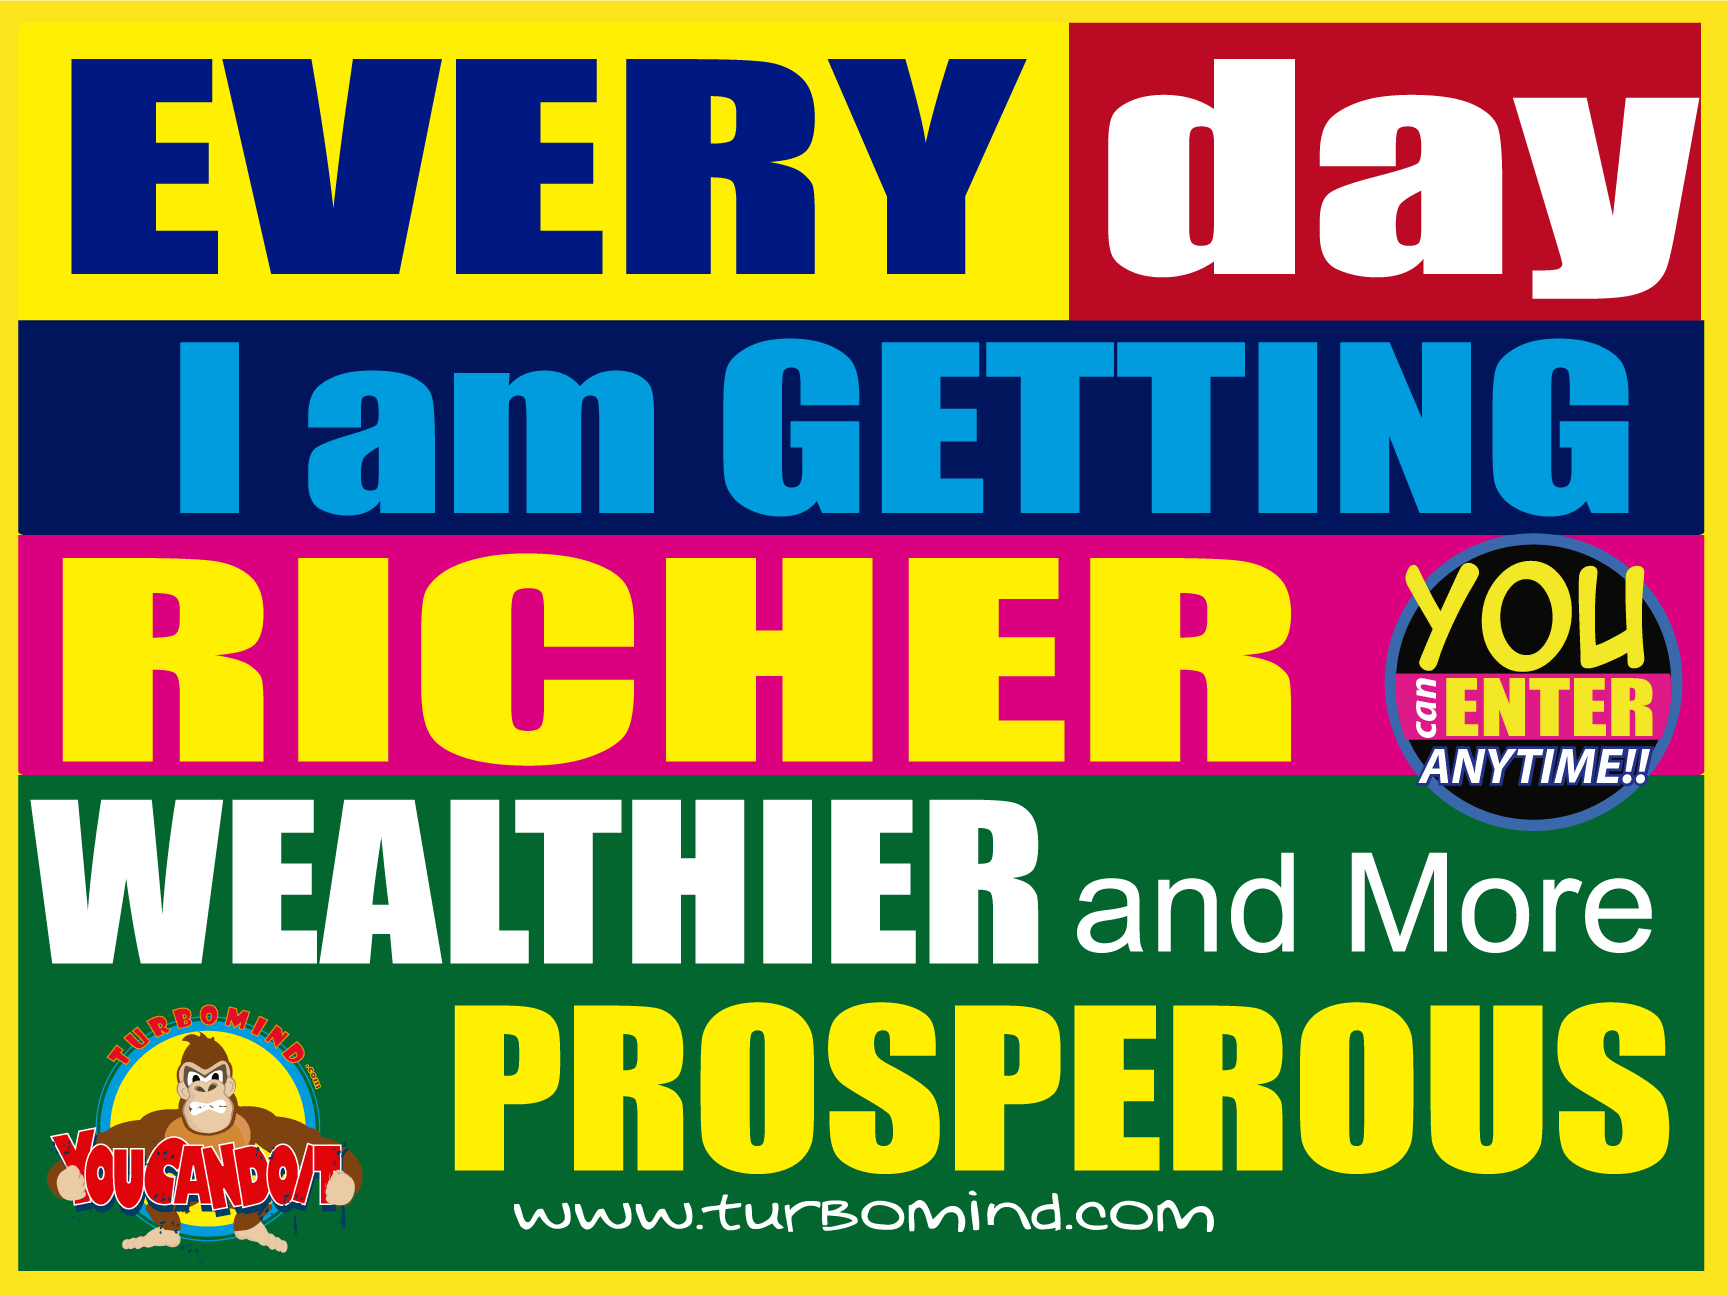 EVERY DAY I AM GETTING RICHER, WEALTHIER AND MORE PROSPEROUS